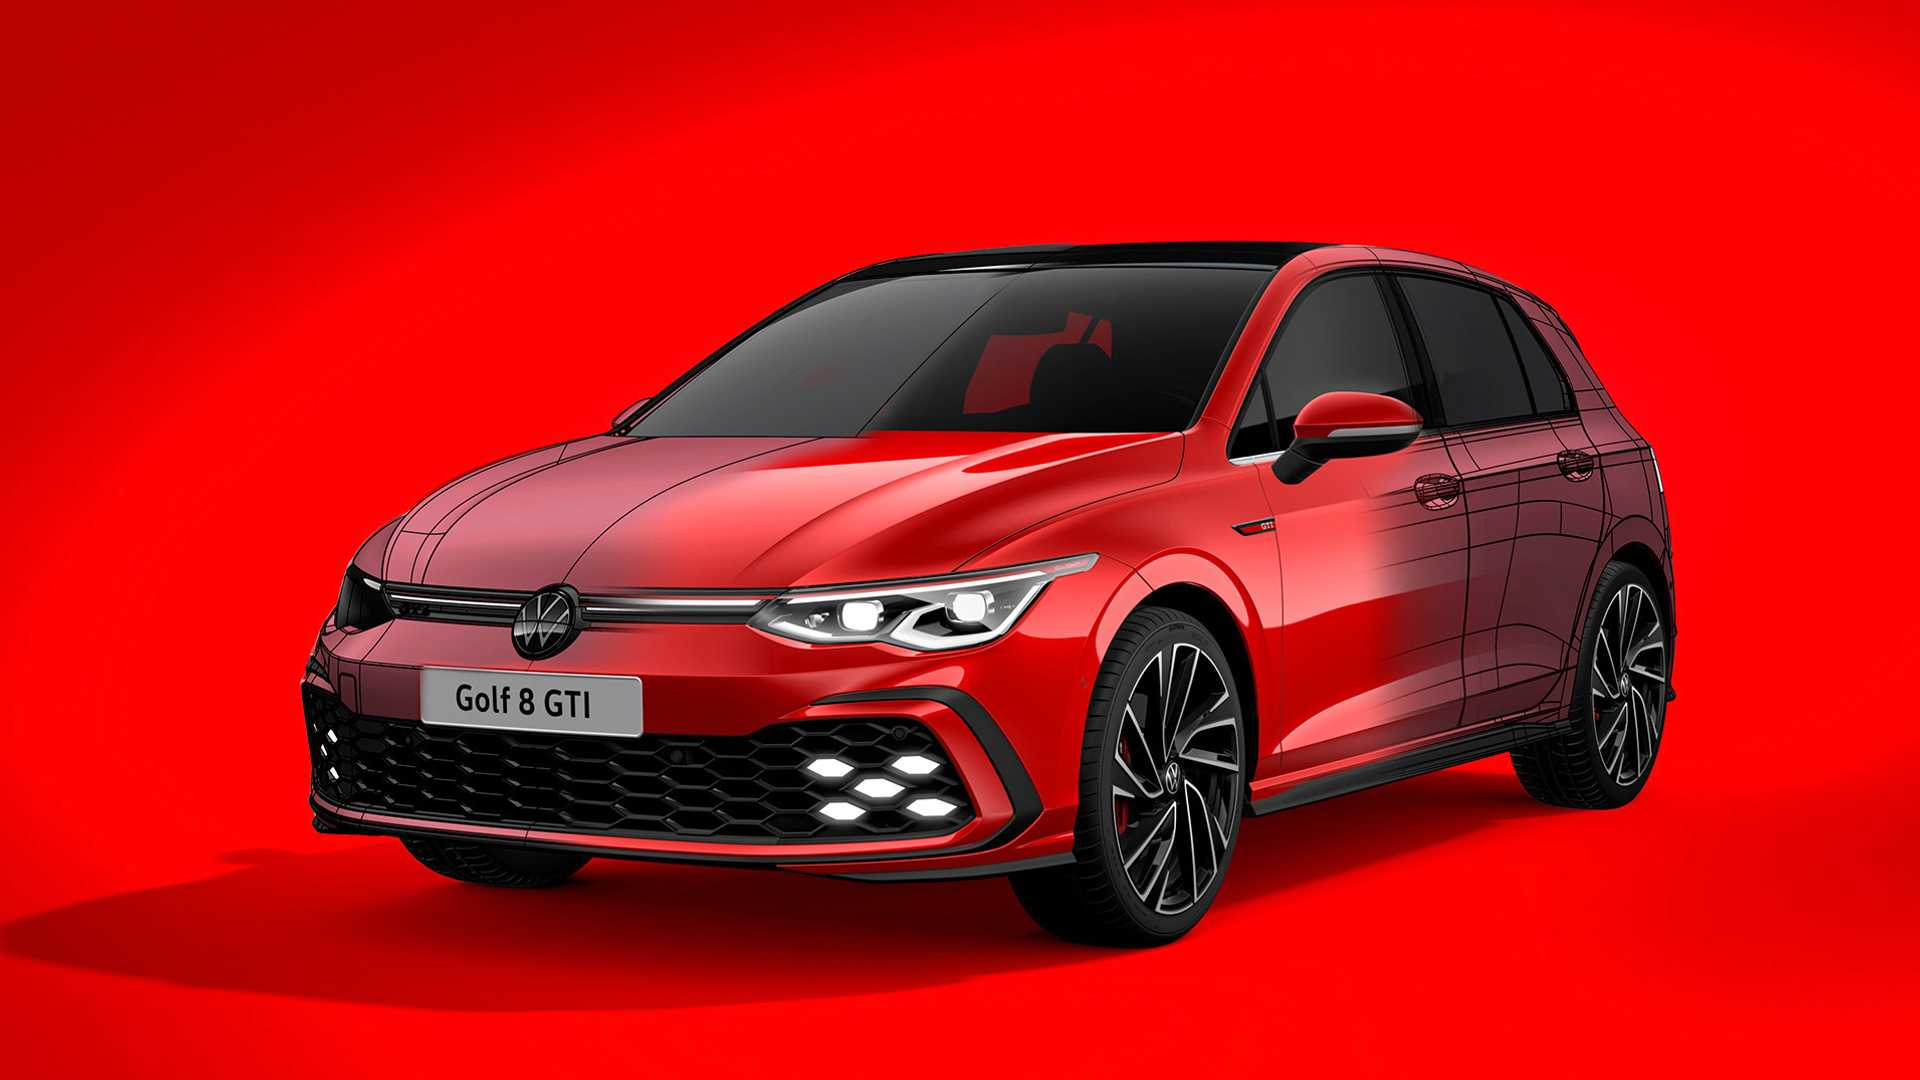 3 VW GTI Gets Performance Software, 3 HP, And Optional Cup 3